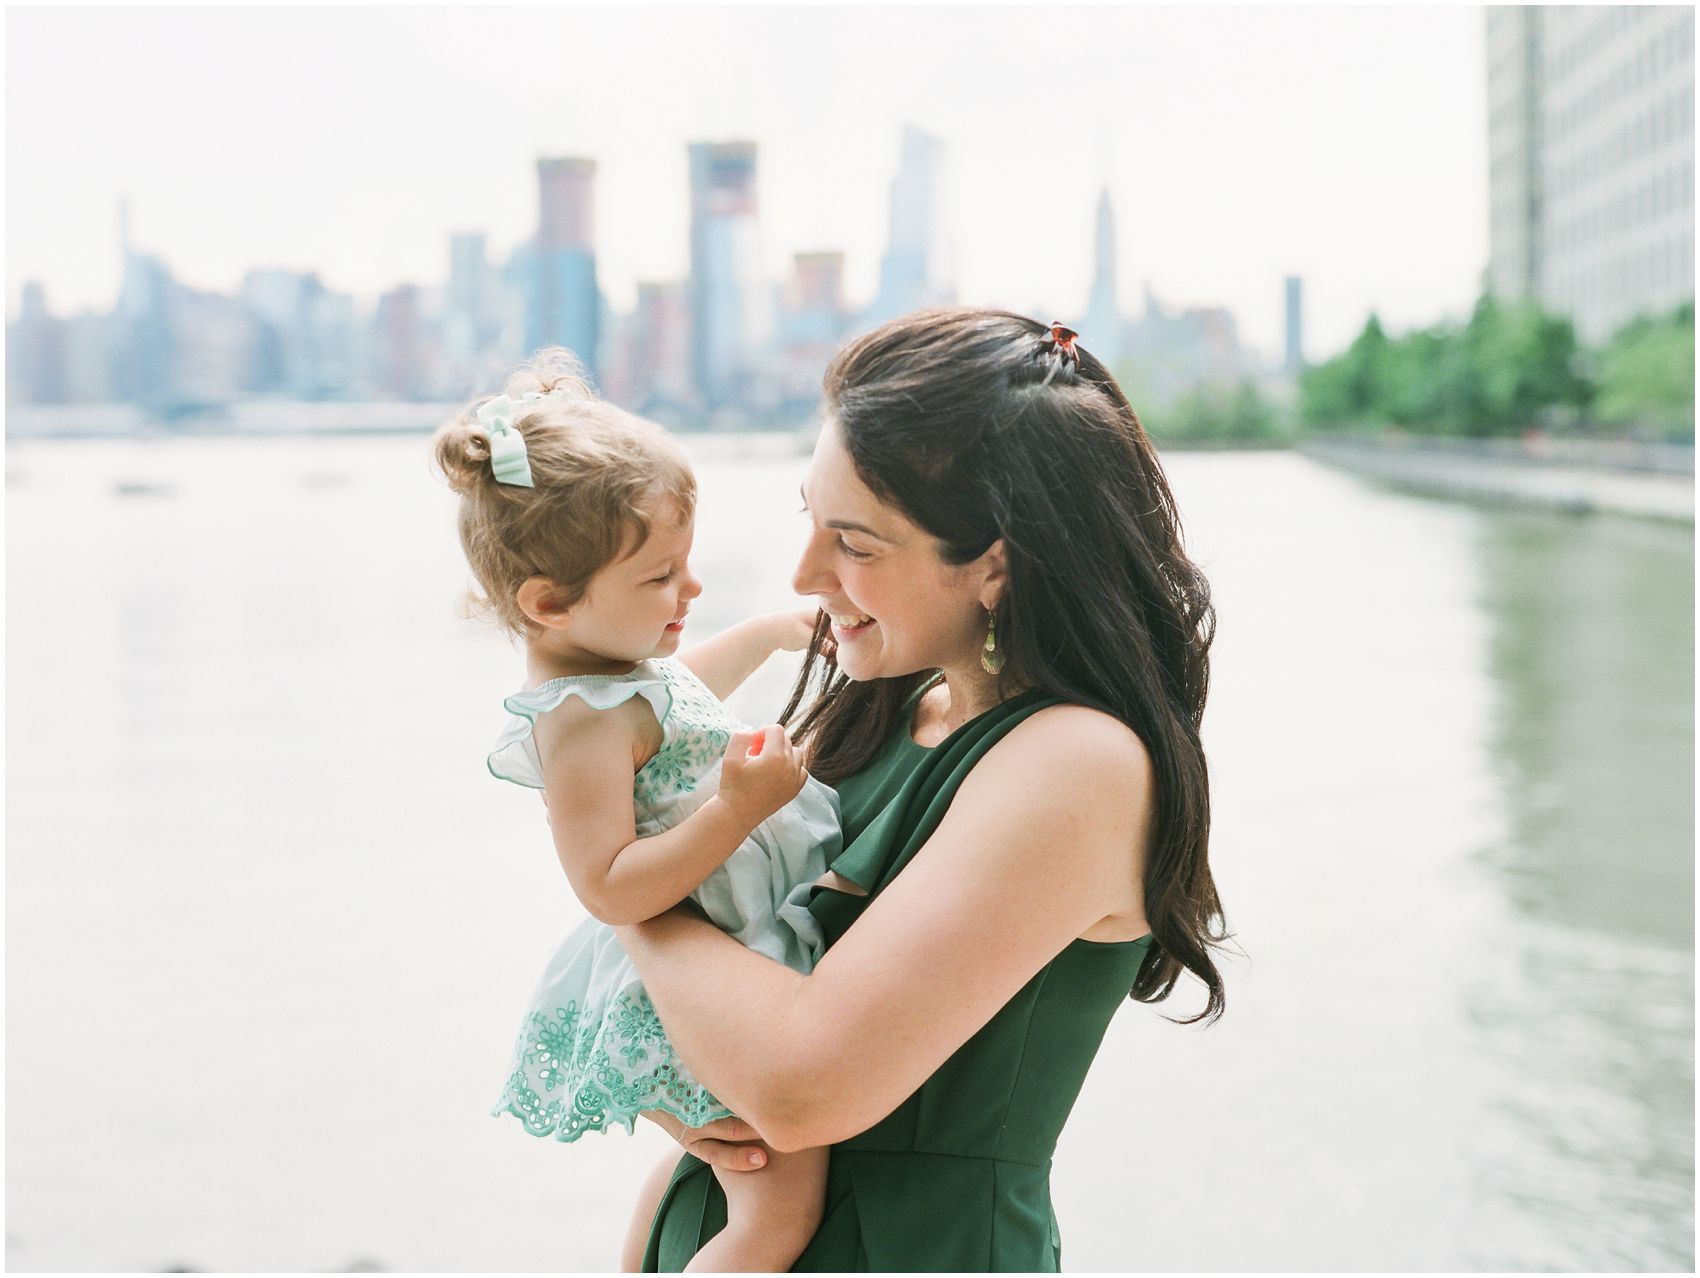 a sweet moment with mom  holding her baby girl and playing with hair by the Hudson River